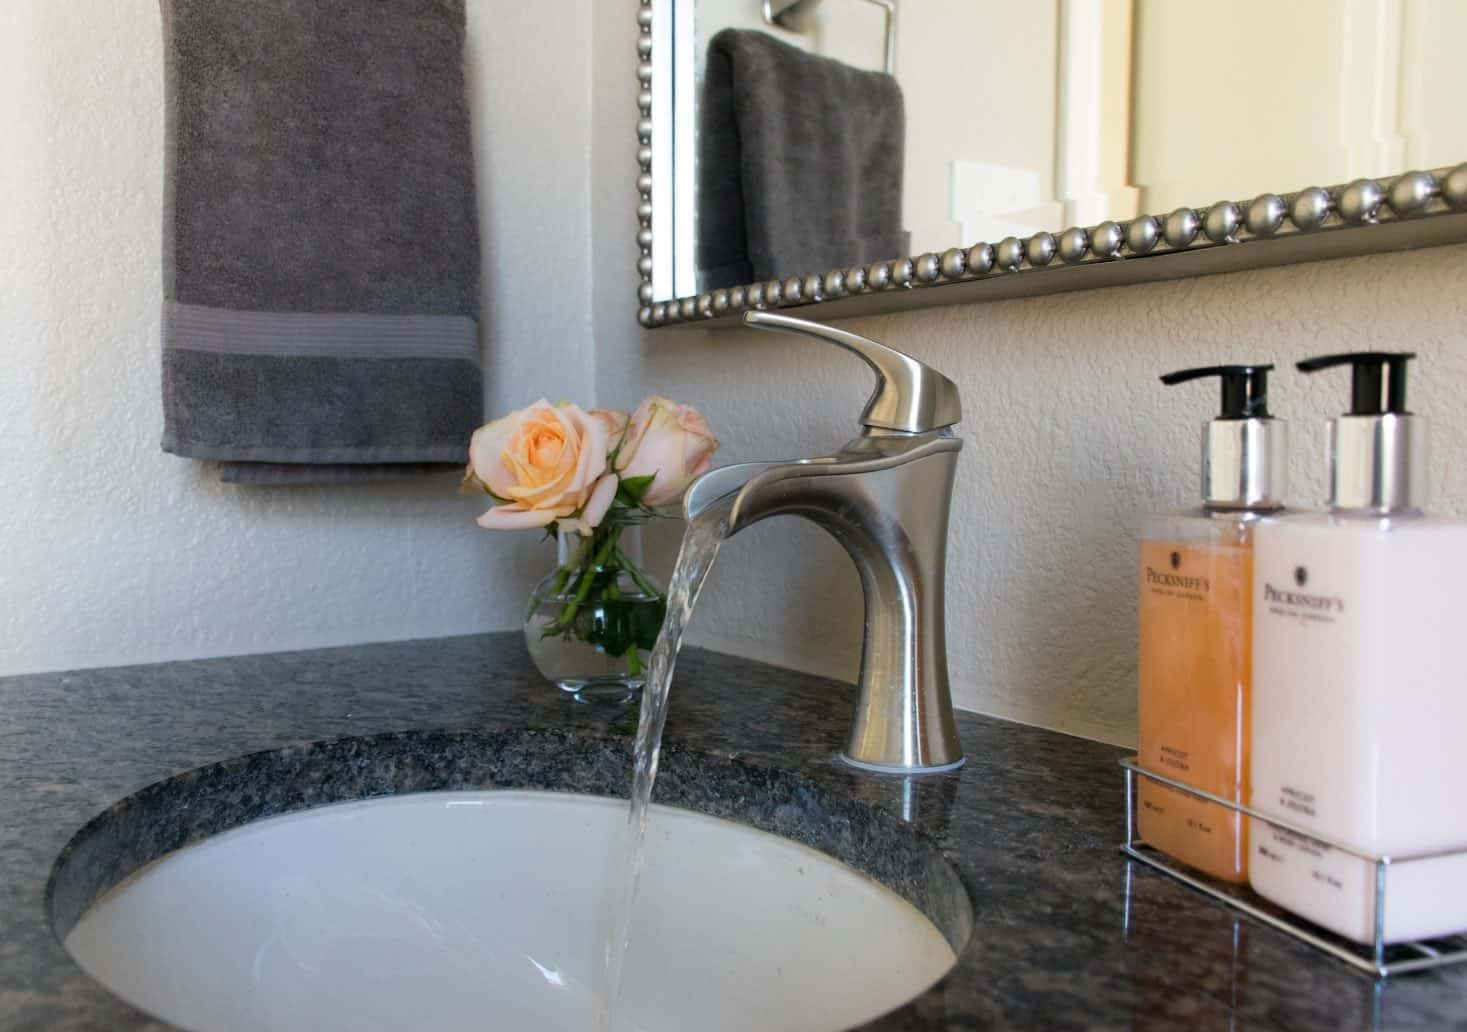 Powder room sink with peach roses and Jaida faucet